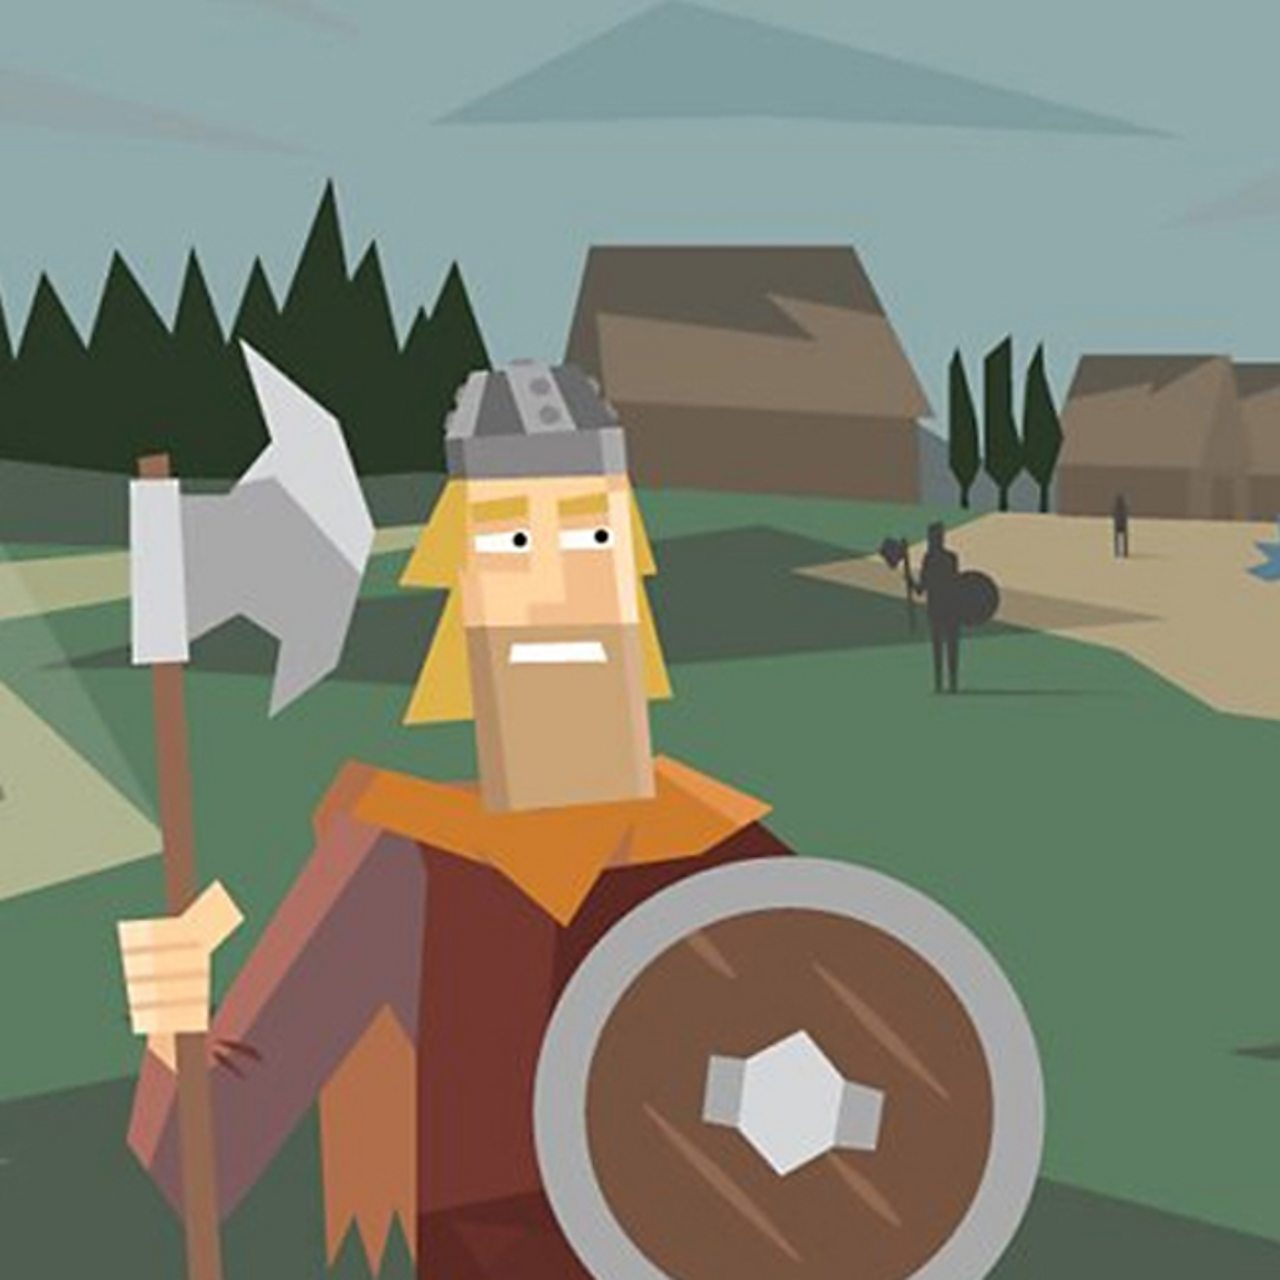 A viking man holding an axe and shield